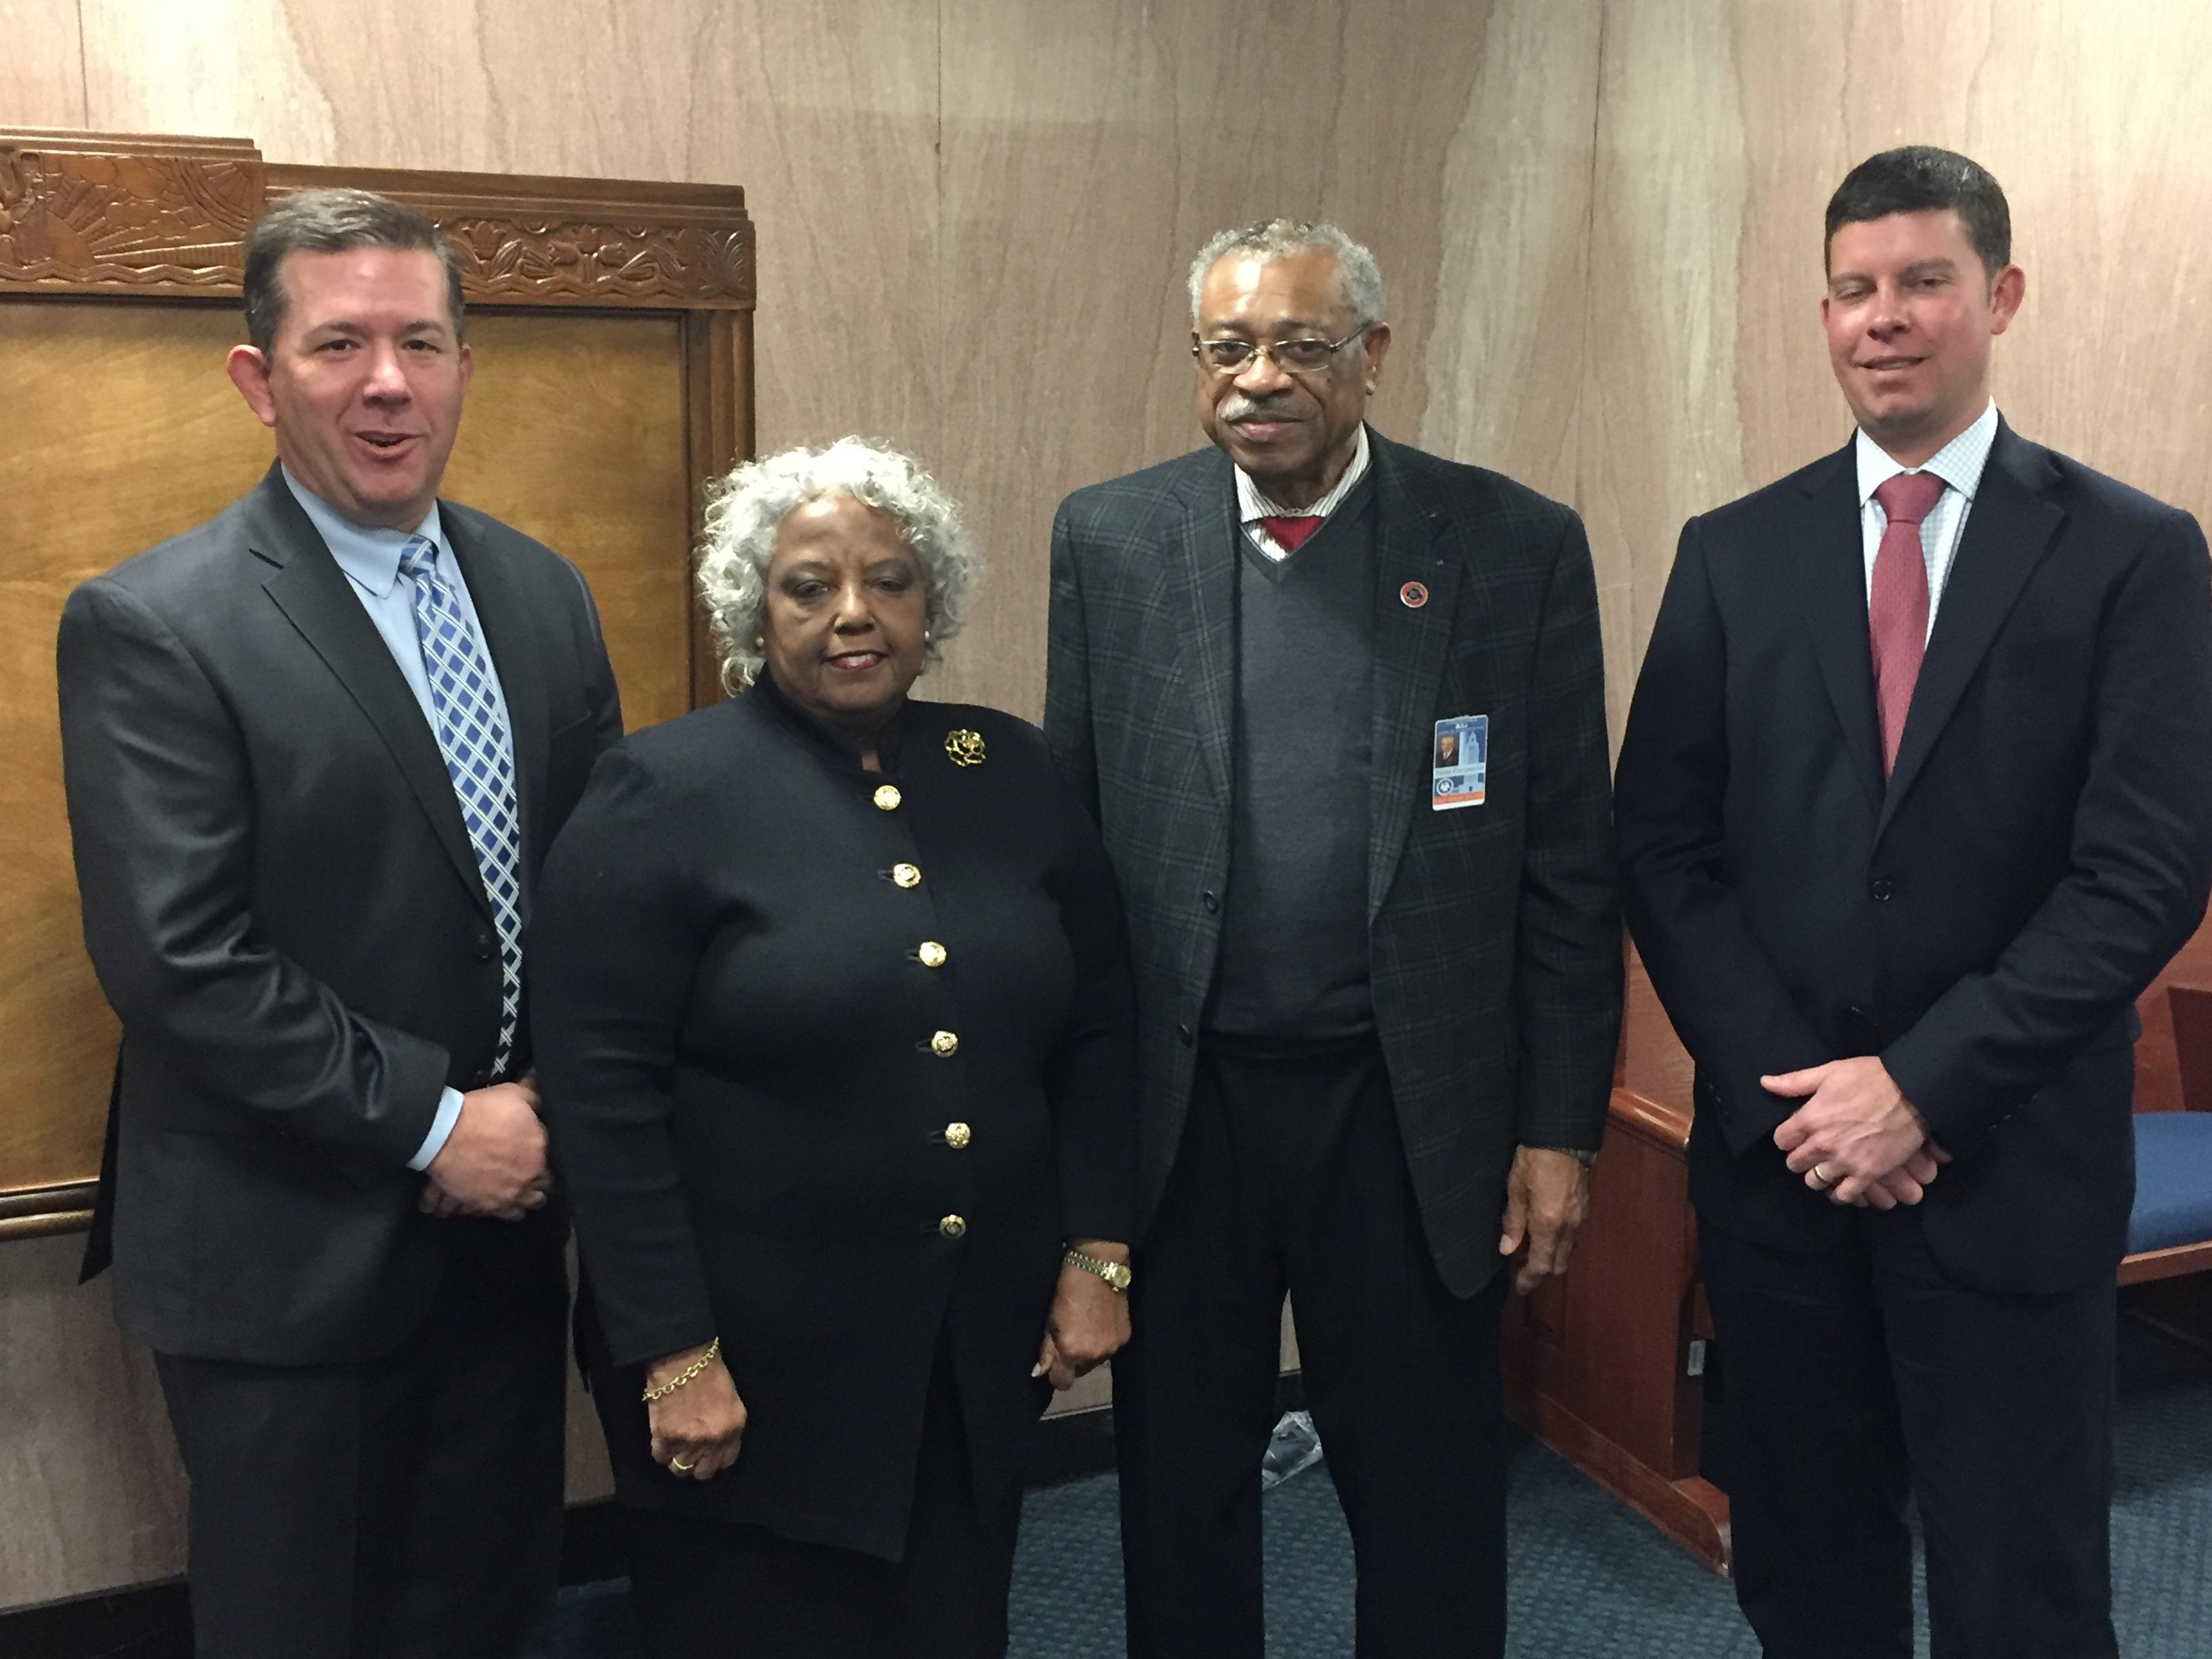 A photo of the City of Baker School board president, Dr. Dana Carpenter and vice president Mrs. Elaine G. Davis with members of the Louisiana State Bond Commission